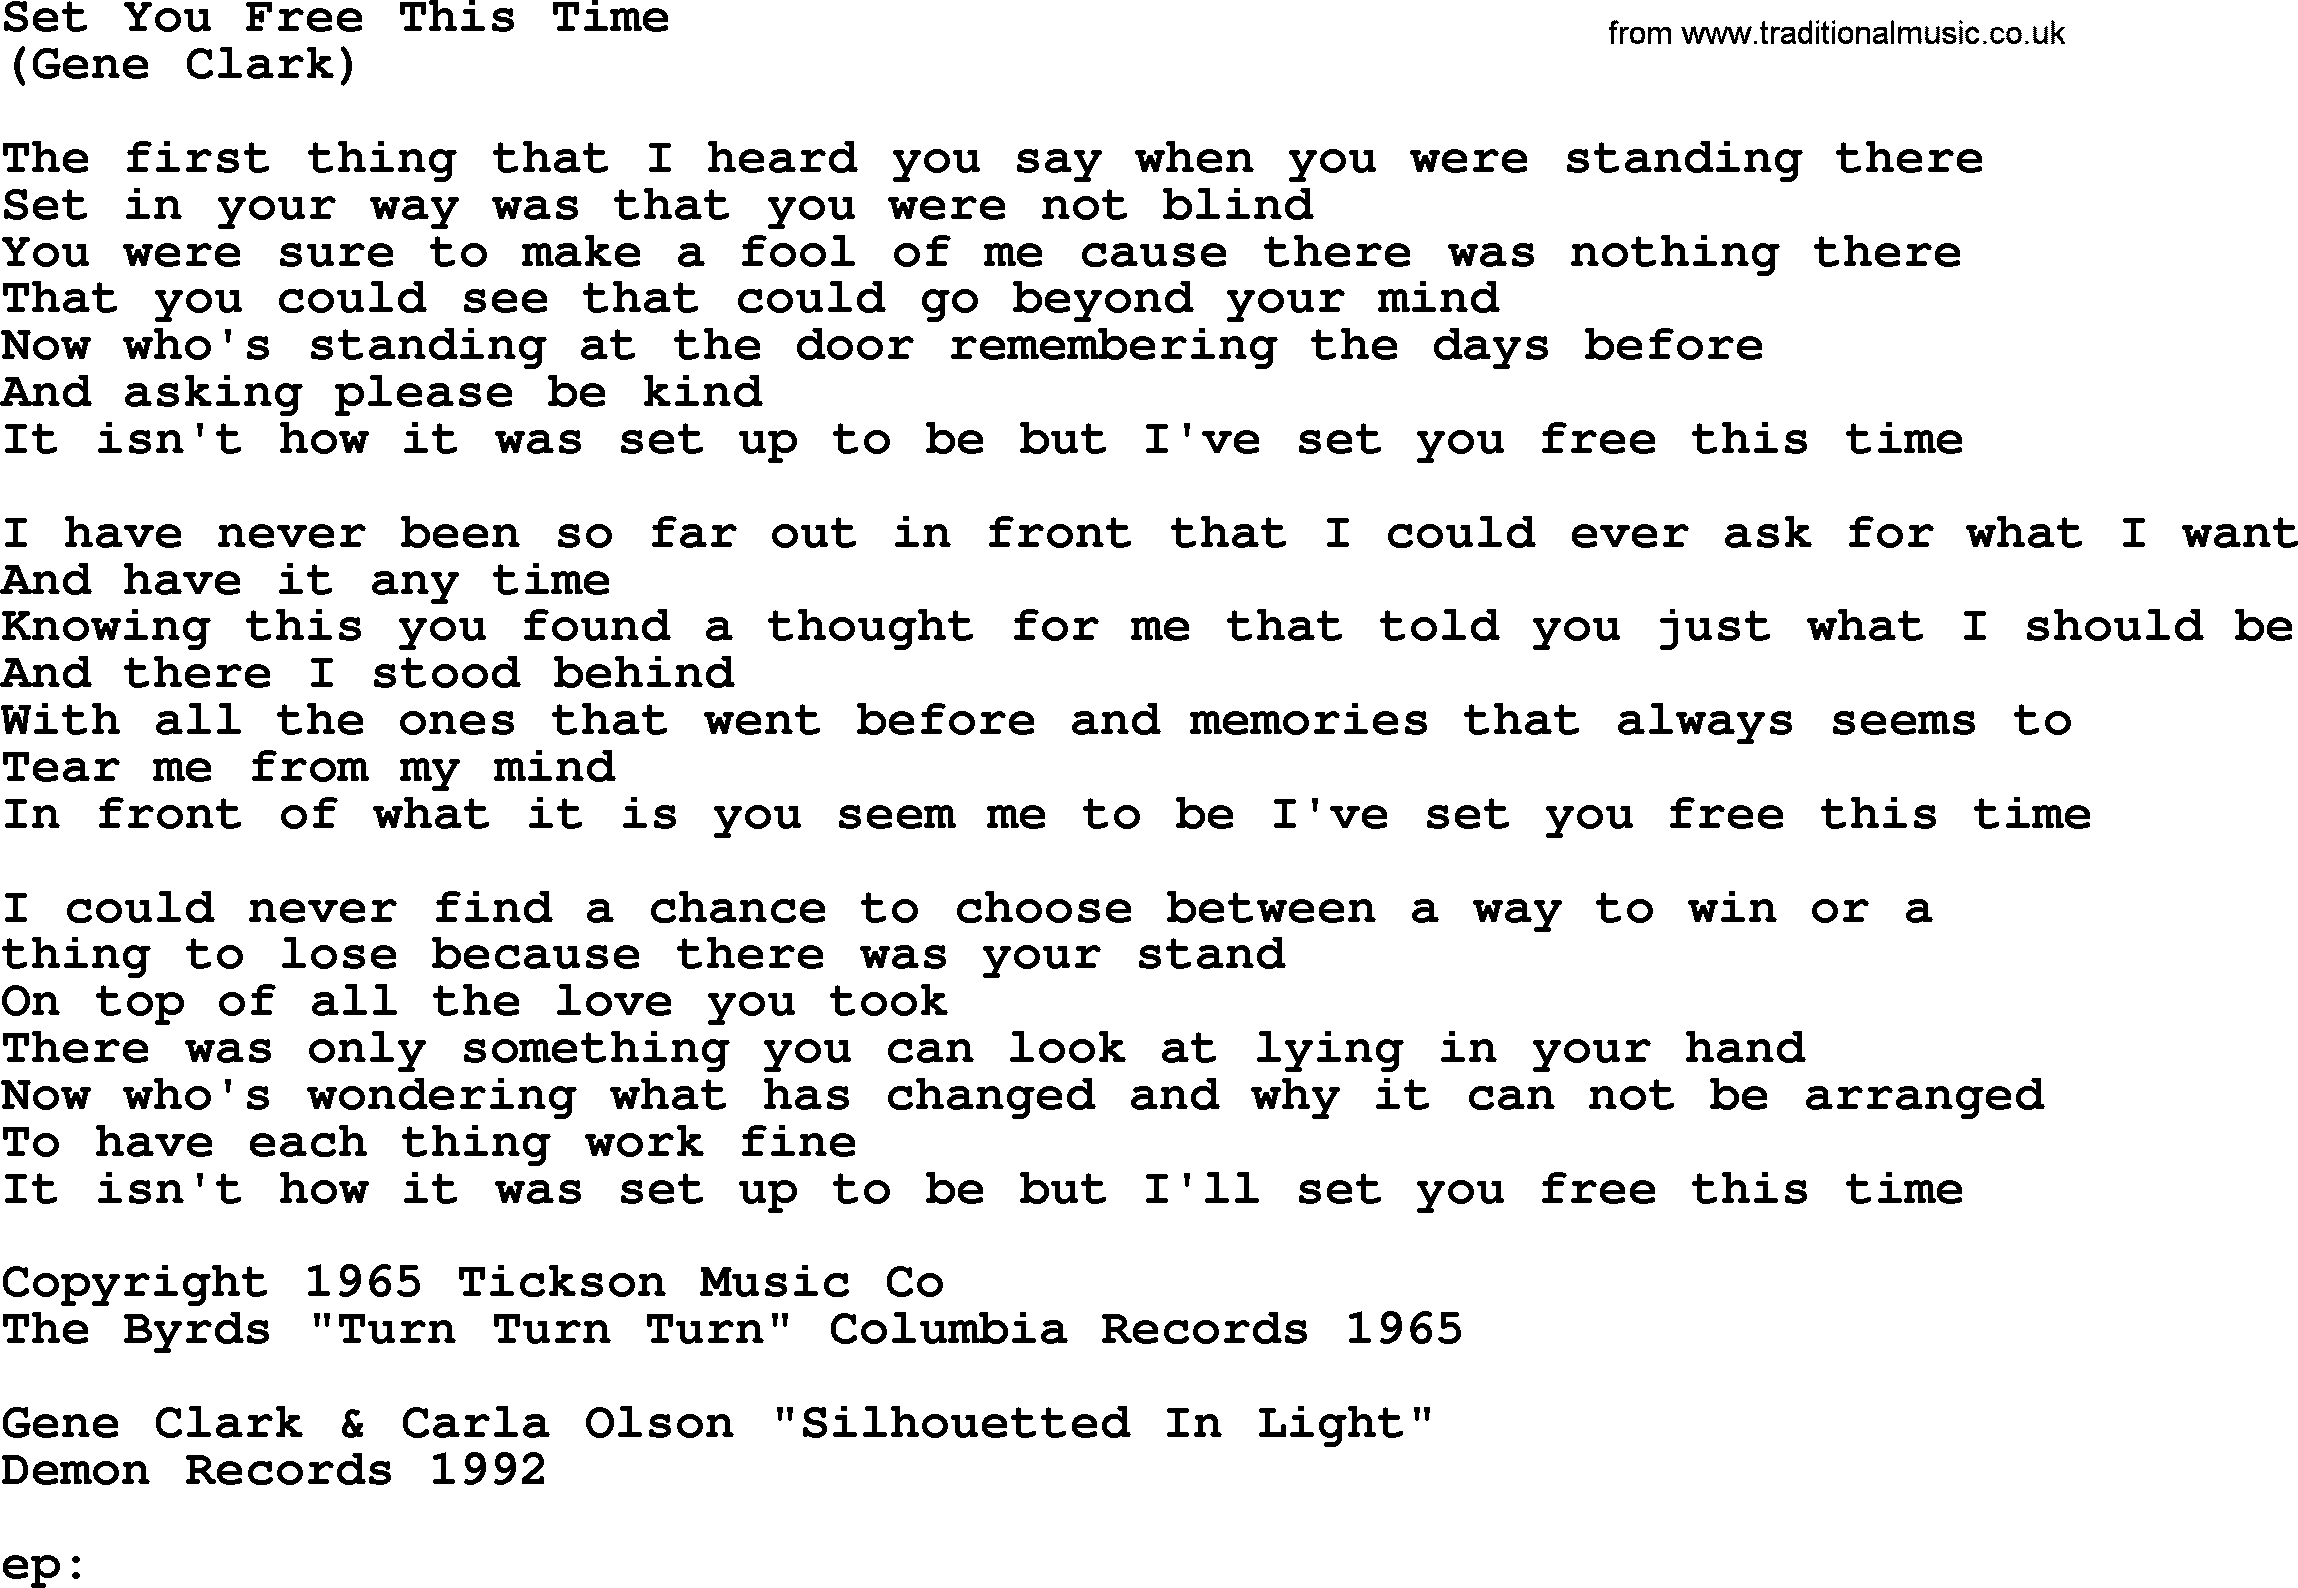 Set You Free This Time By The Byrds Lyrics With Pdf